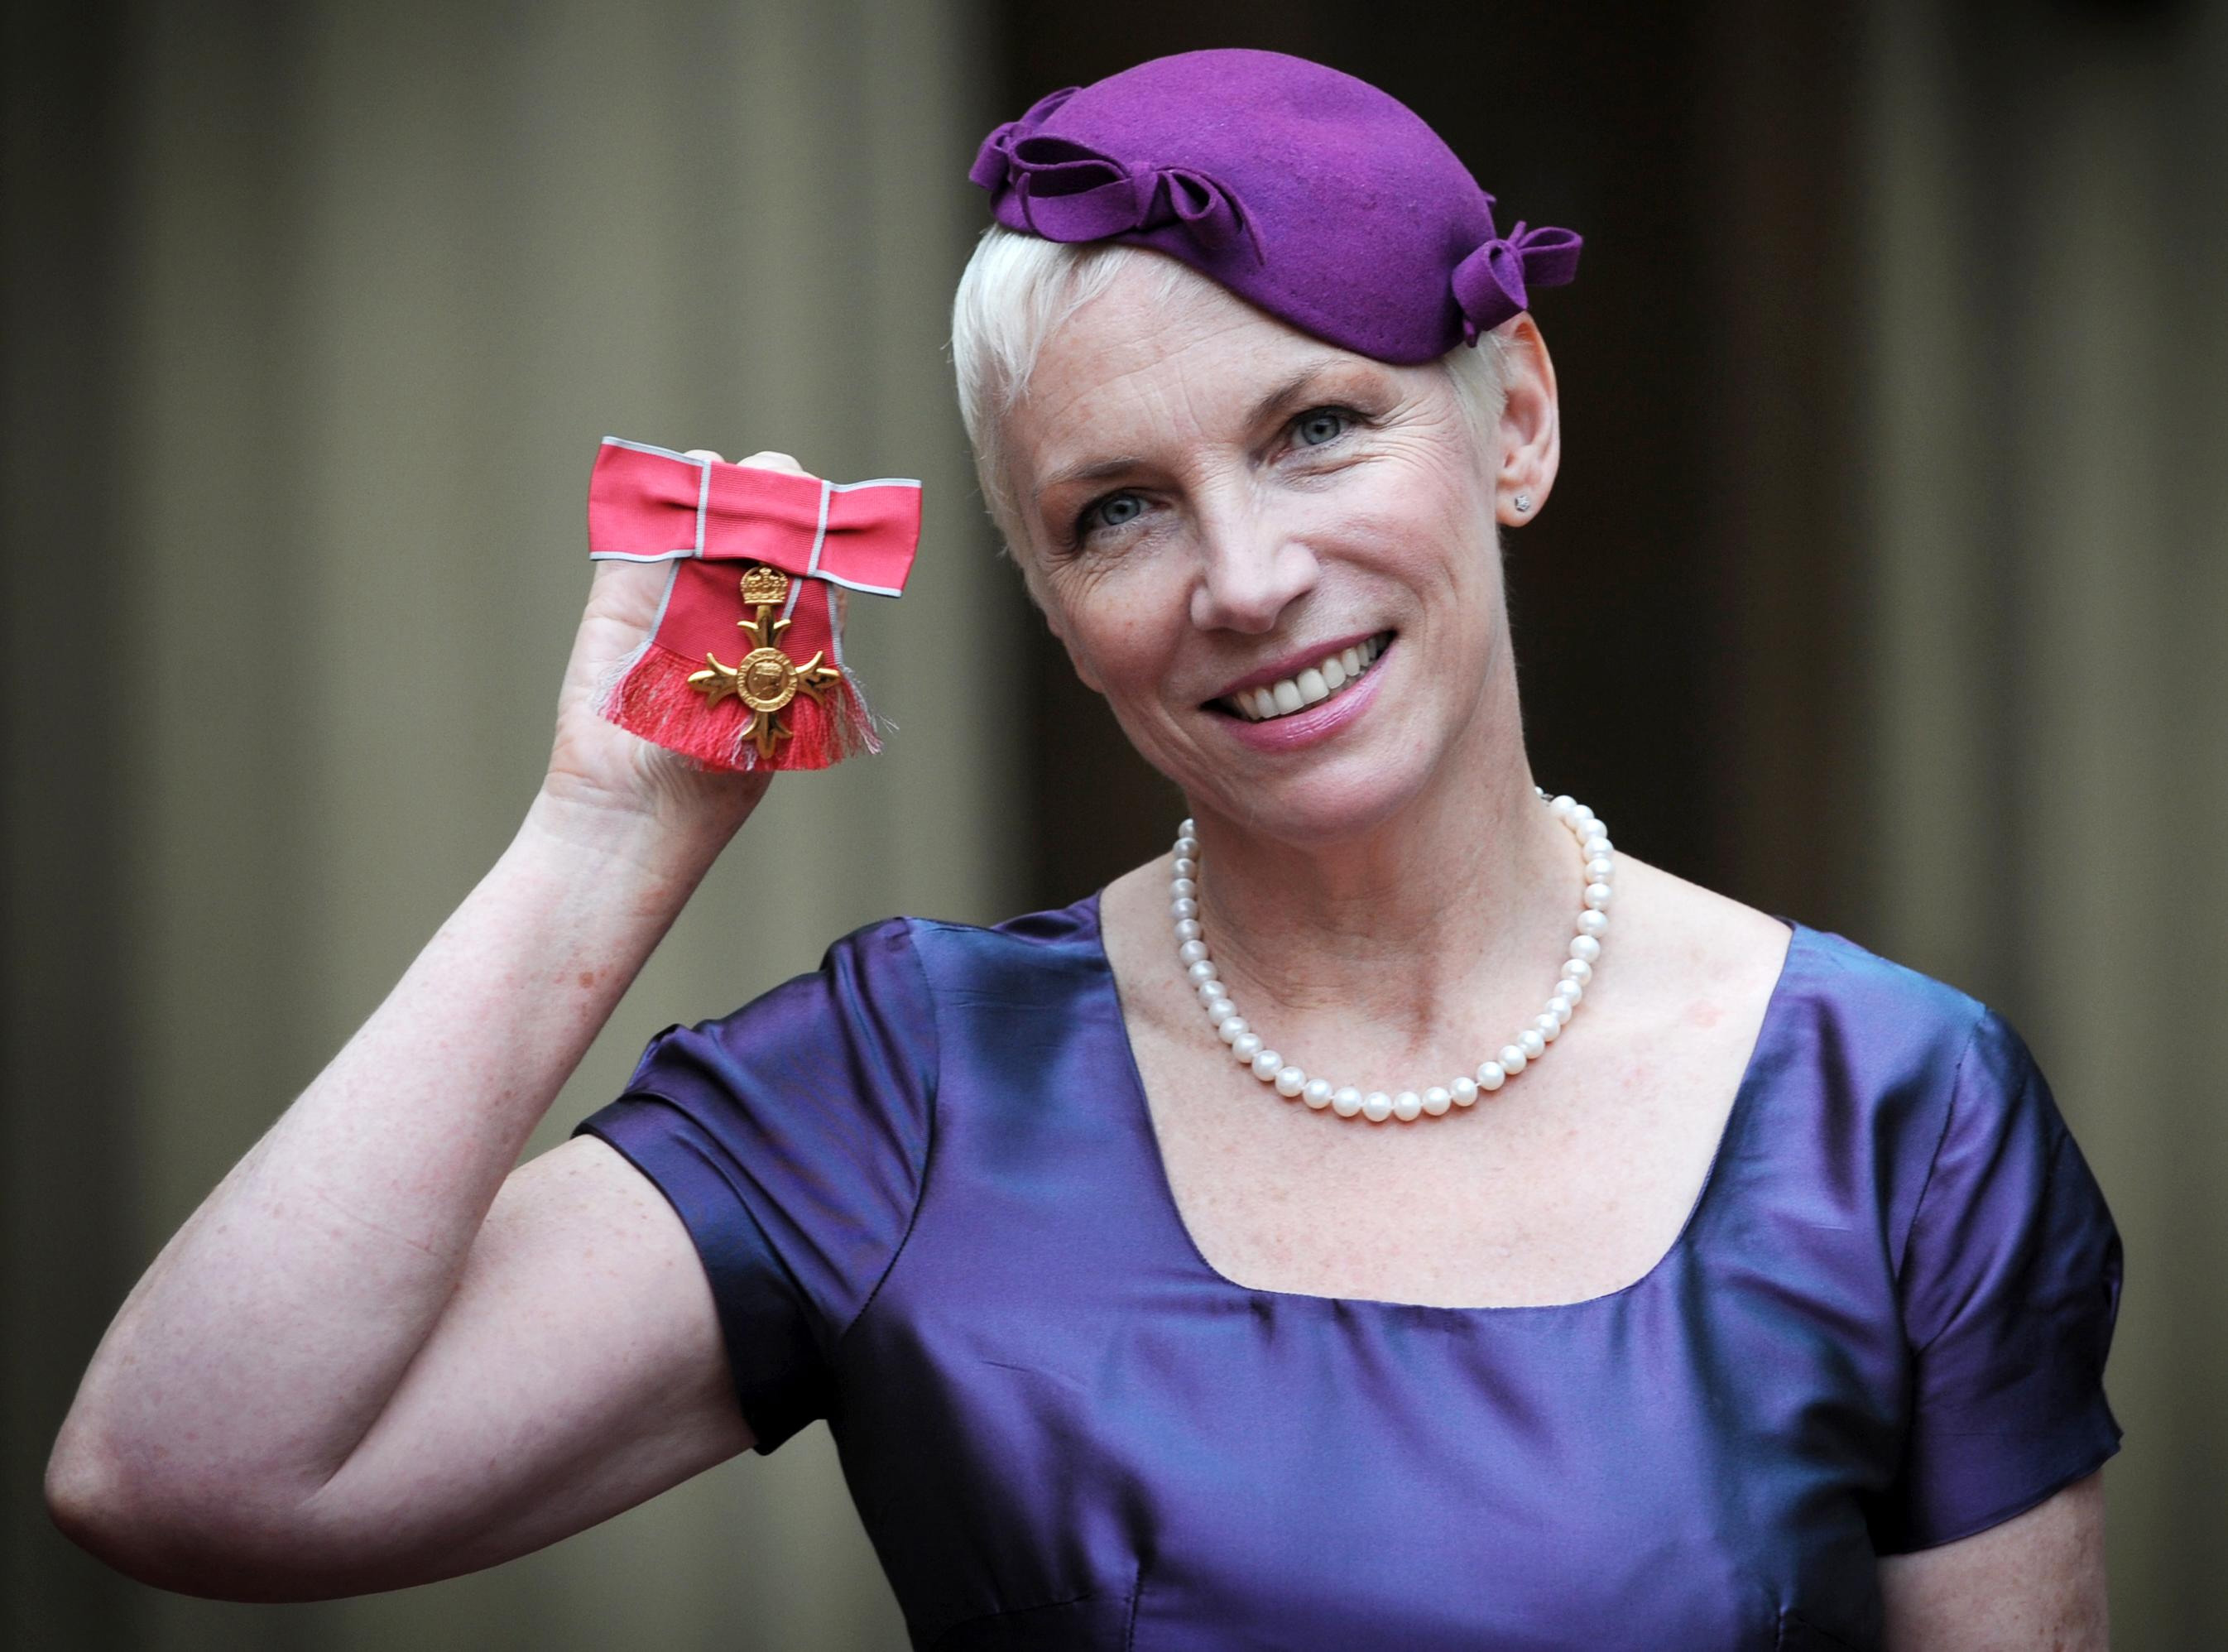 Investitures at Buckingham Palace. Musician Annie Lennox poses with her OBE which she received from Queen Elizabeth II at Buc